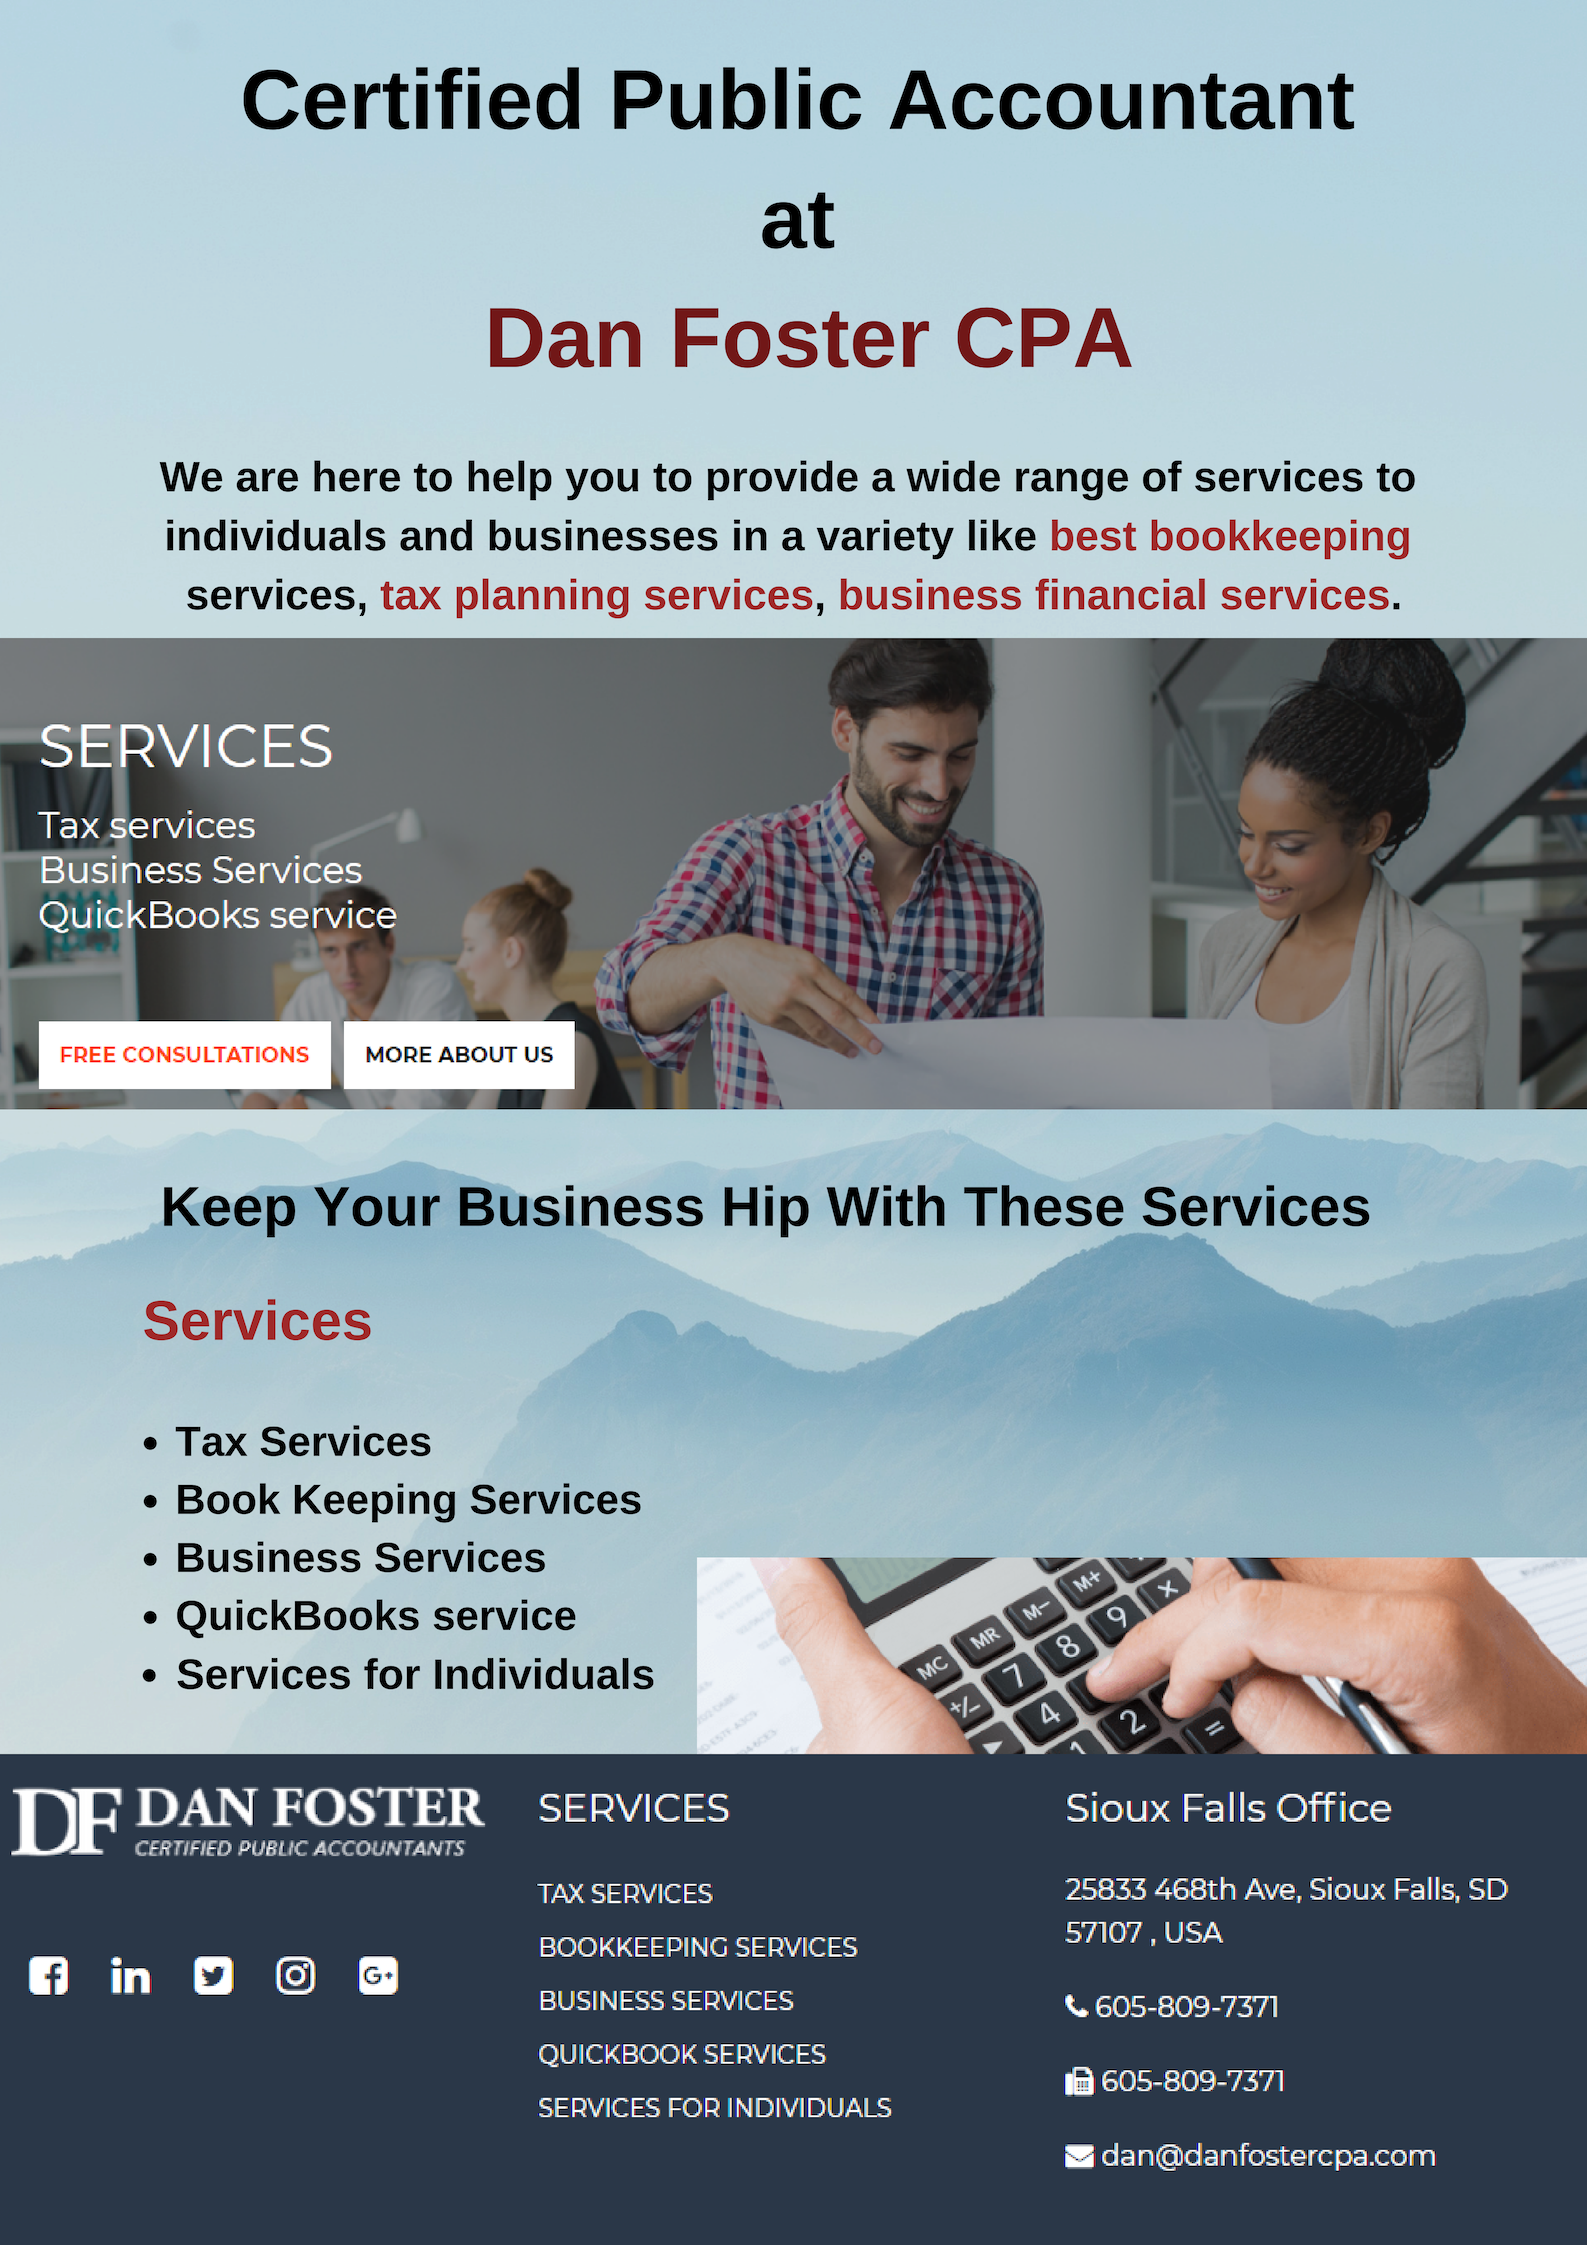 Find an Accountant: Dan Foster CPA